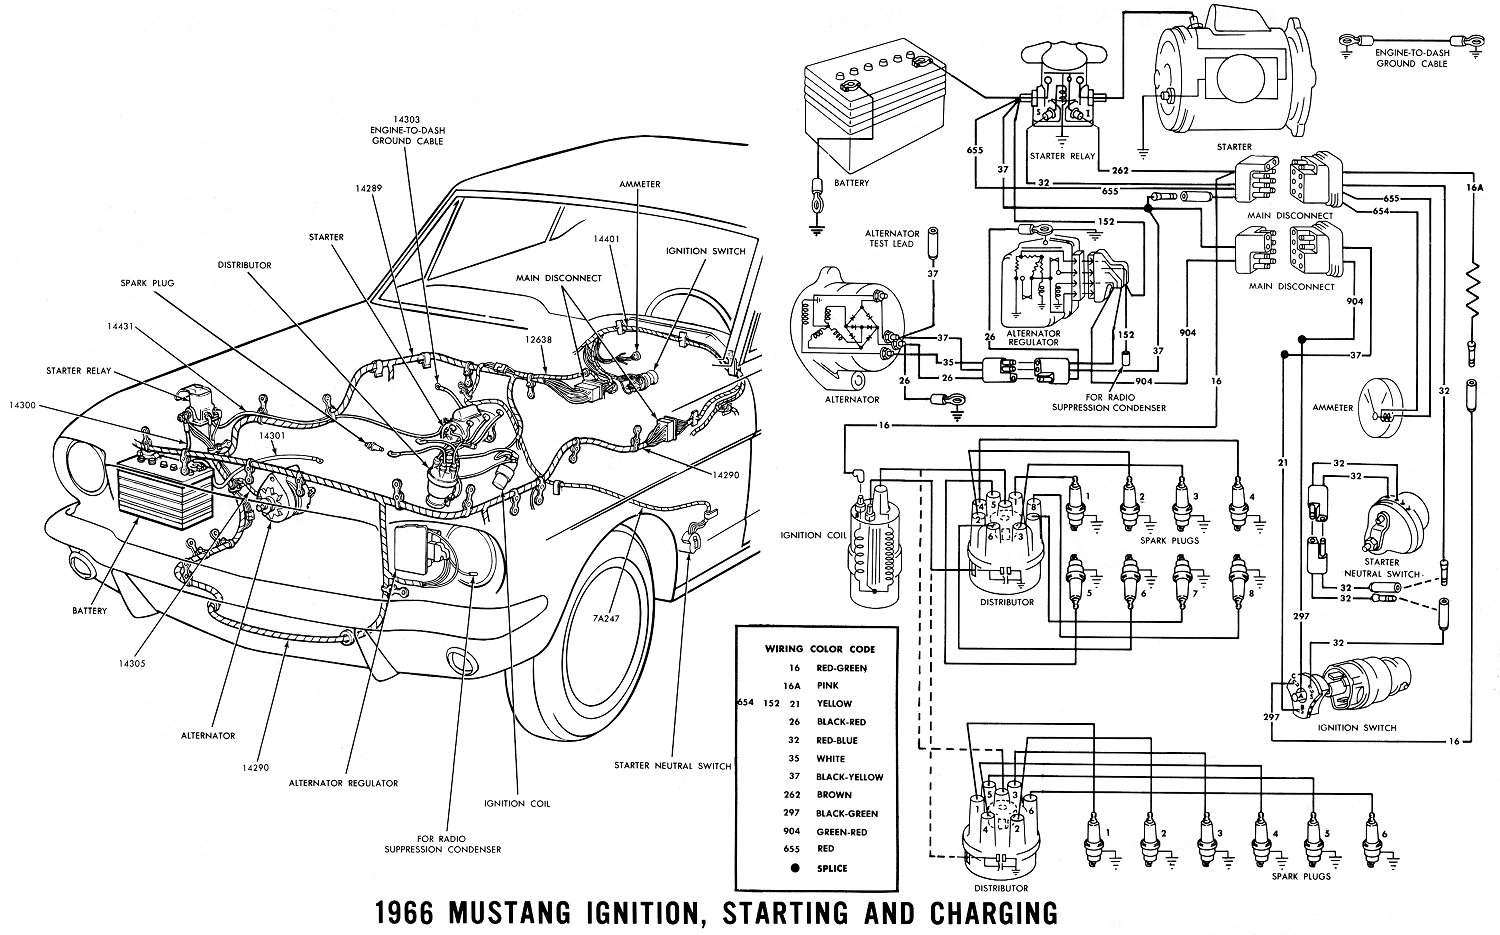 66ignit 1965 mustang headlight wiring diagram schematic wiring diagram 68 mustang headlight wiring diagram at readyjetset.co